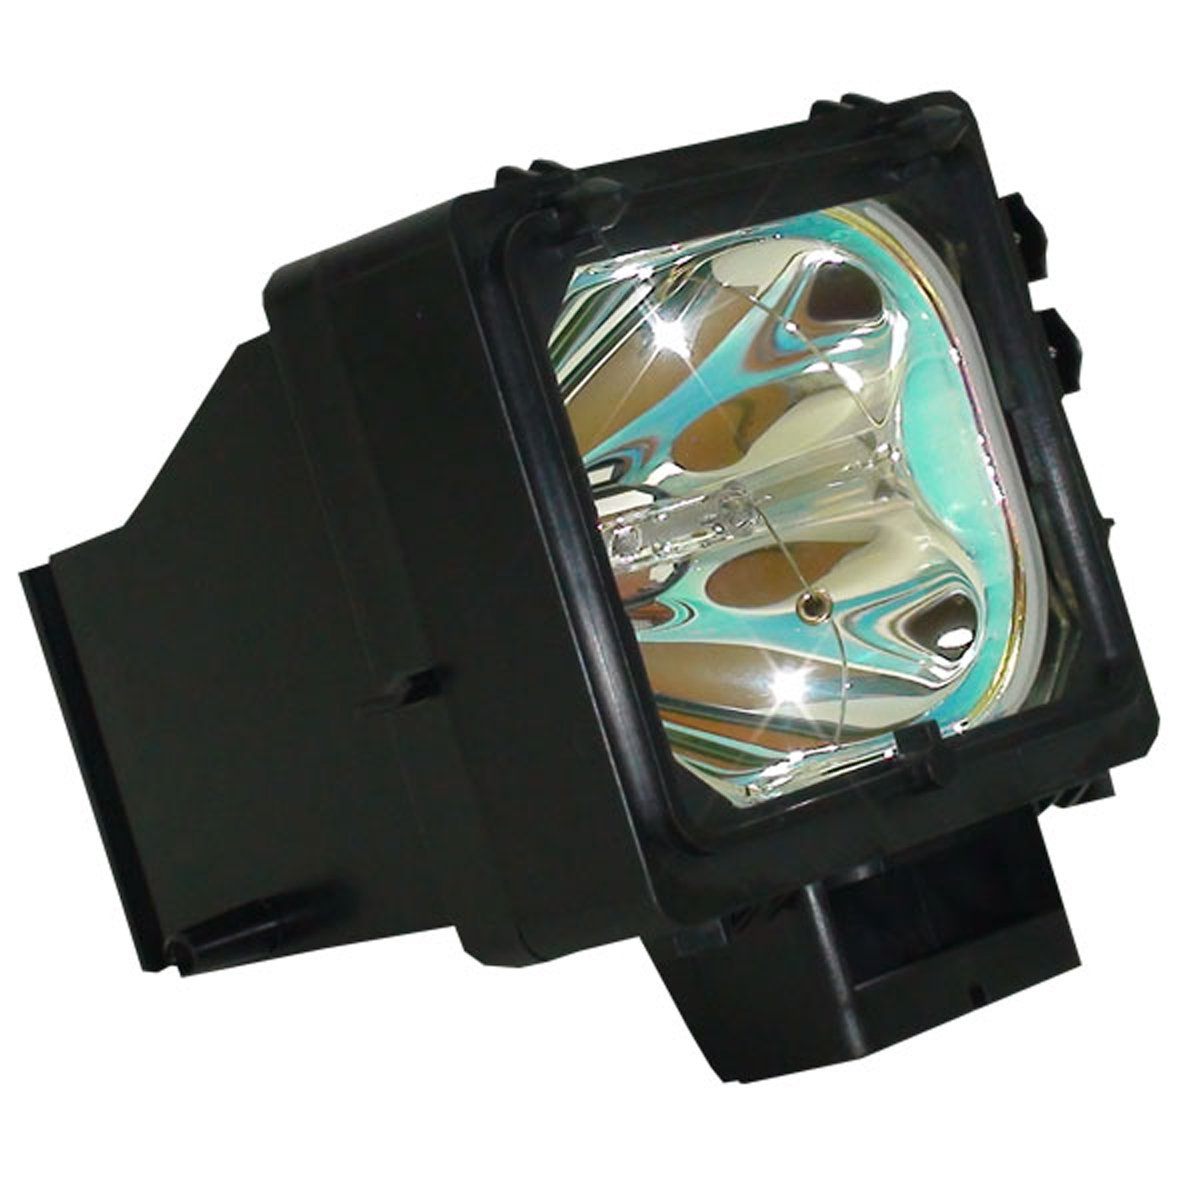 AuraBeam XL-2200 Professional Television Replacement Lamp for Sony KDF-55WF655 with Housing Powered by Philips